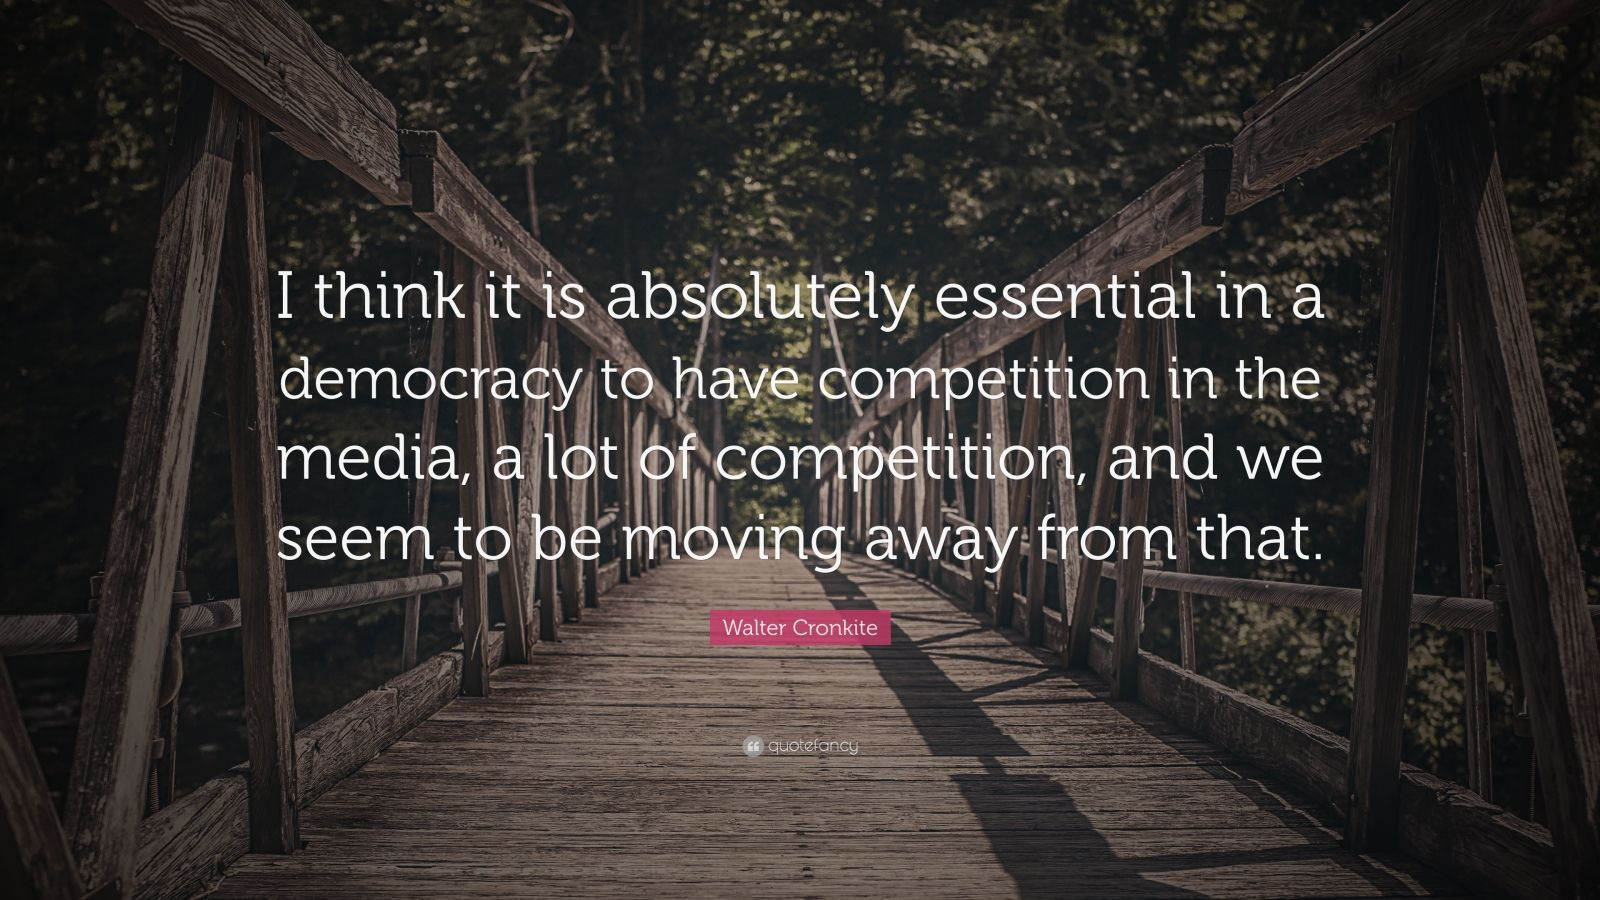 """Walter Cronkite Quote: """"I think it is absolutely essential in a democracy to have competition in the media, a lot of competition, and we seem to be moving away from that."""""""